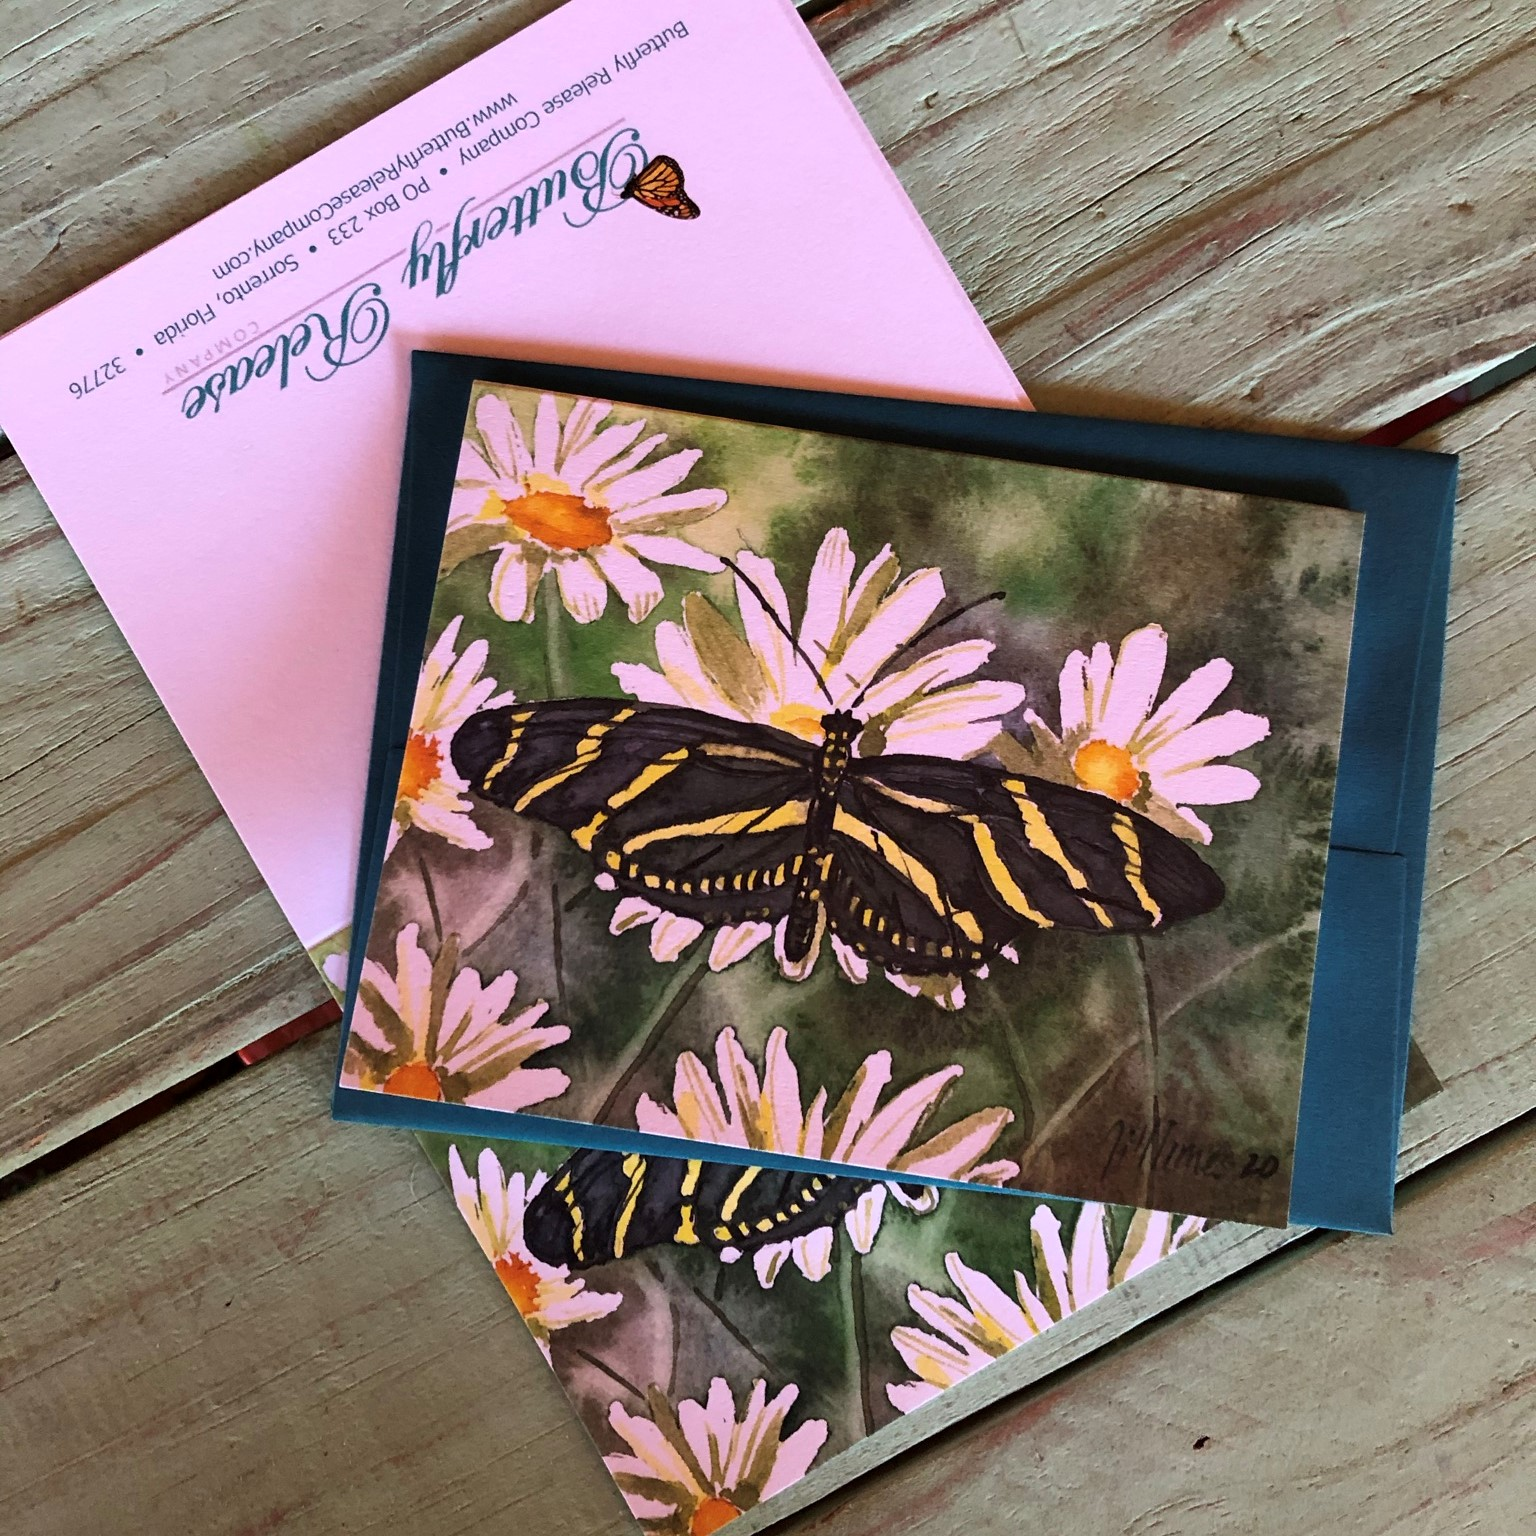 Zebra Longwing on daisy  - Original Watercolor prints